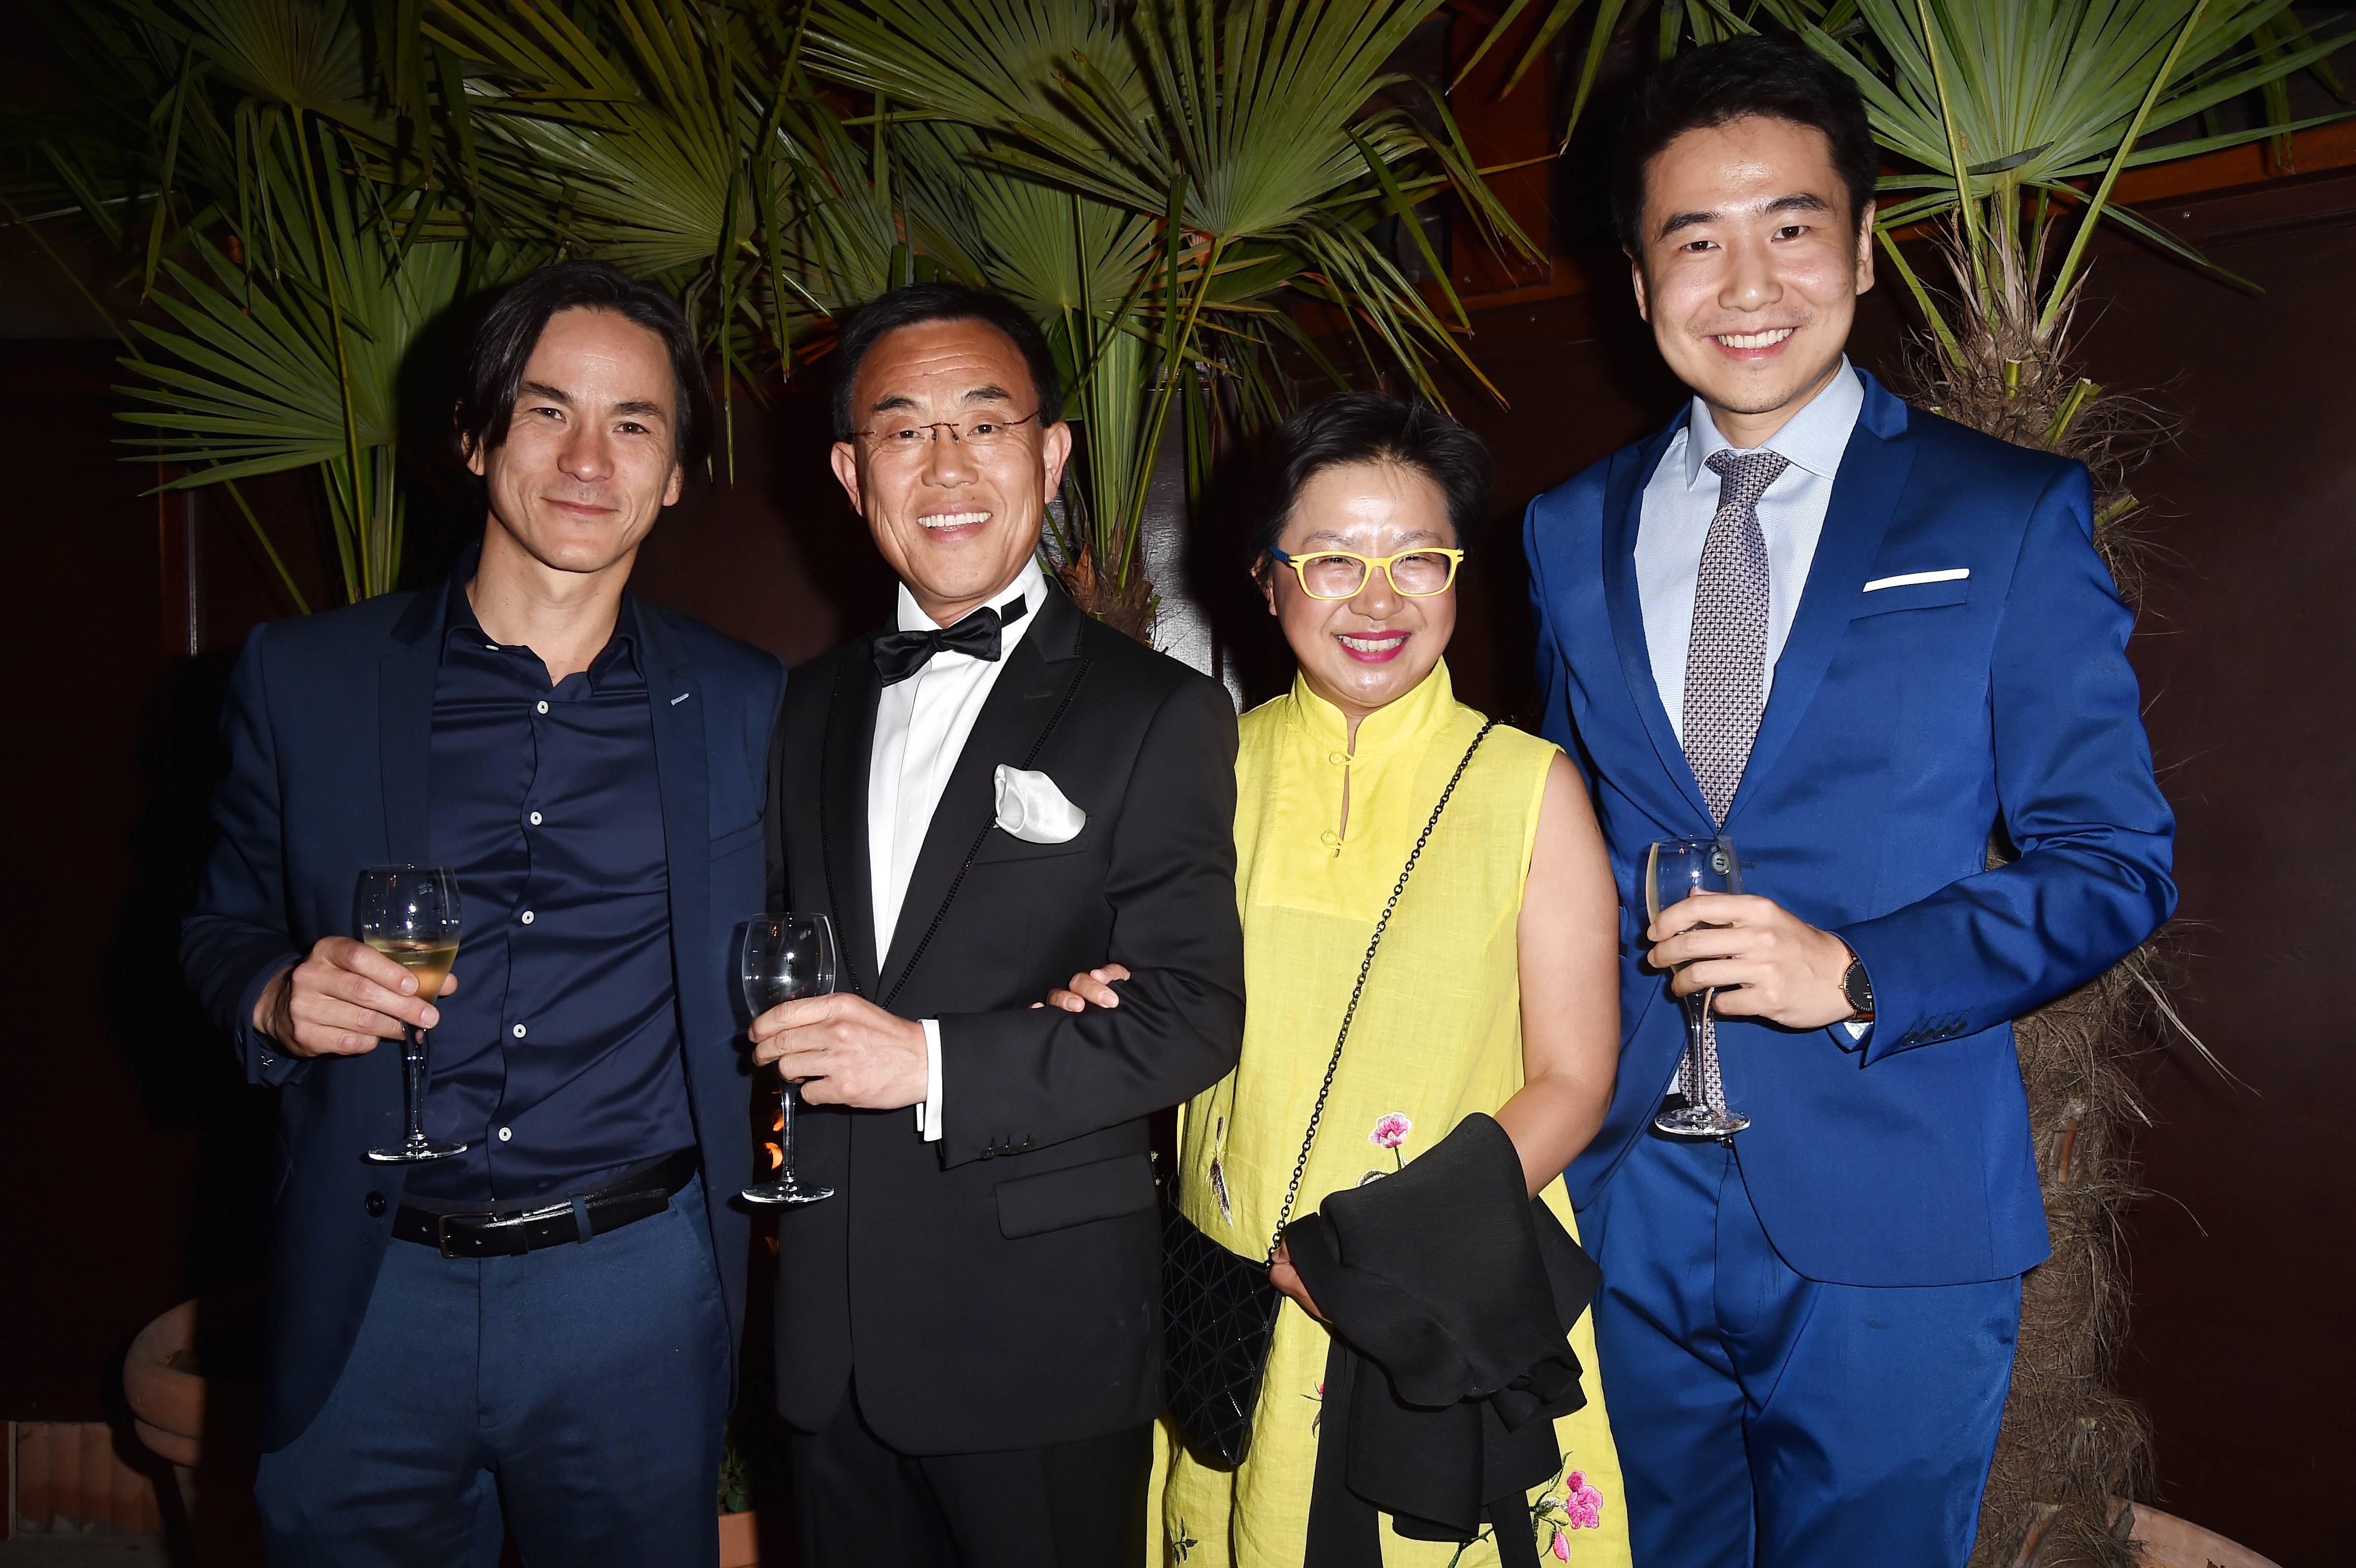 CANNES, FRANCE - MAY 22:  Benoit Chang, Jack Gao , Miao Xu and Hang Shi attend Prada Private Dinner during the 70th annual Cannes Film Festival at Restaurant Fred L'Ecailler on May 22, 2017 in Cannes, France.  (Photo by Jacopo Raule/Getty Images for Prada)